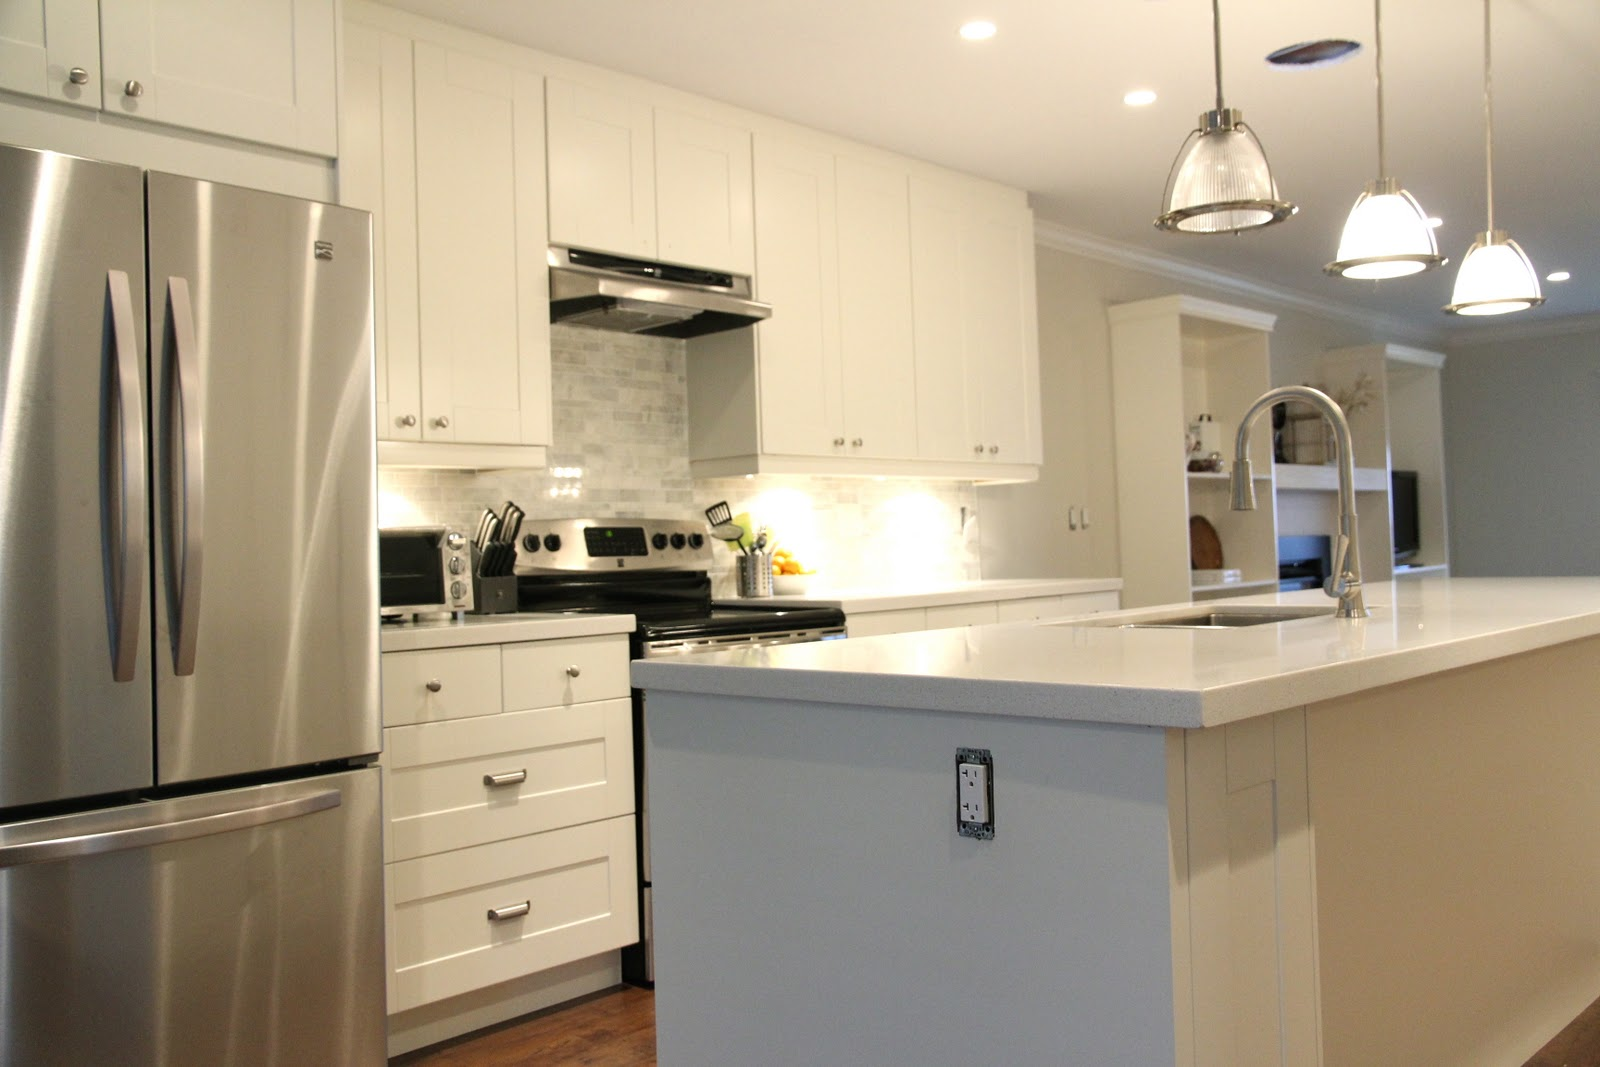 The Benefits of IKEA Kitchen Cabinets